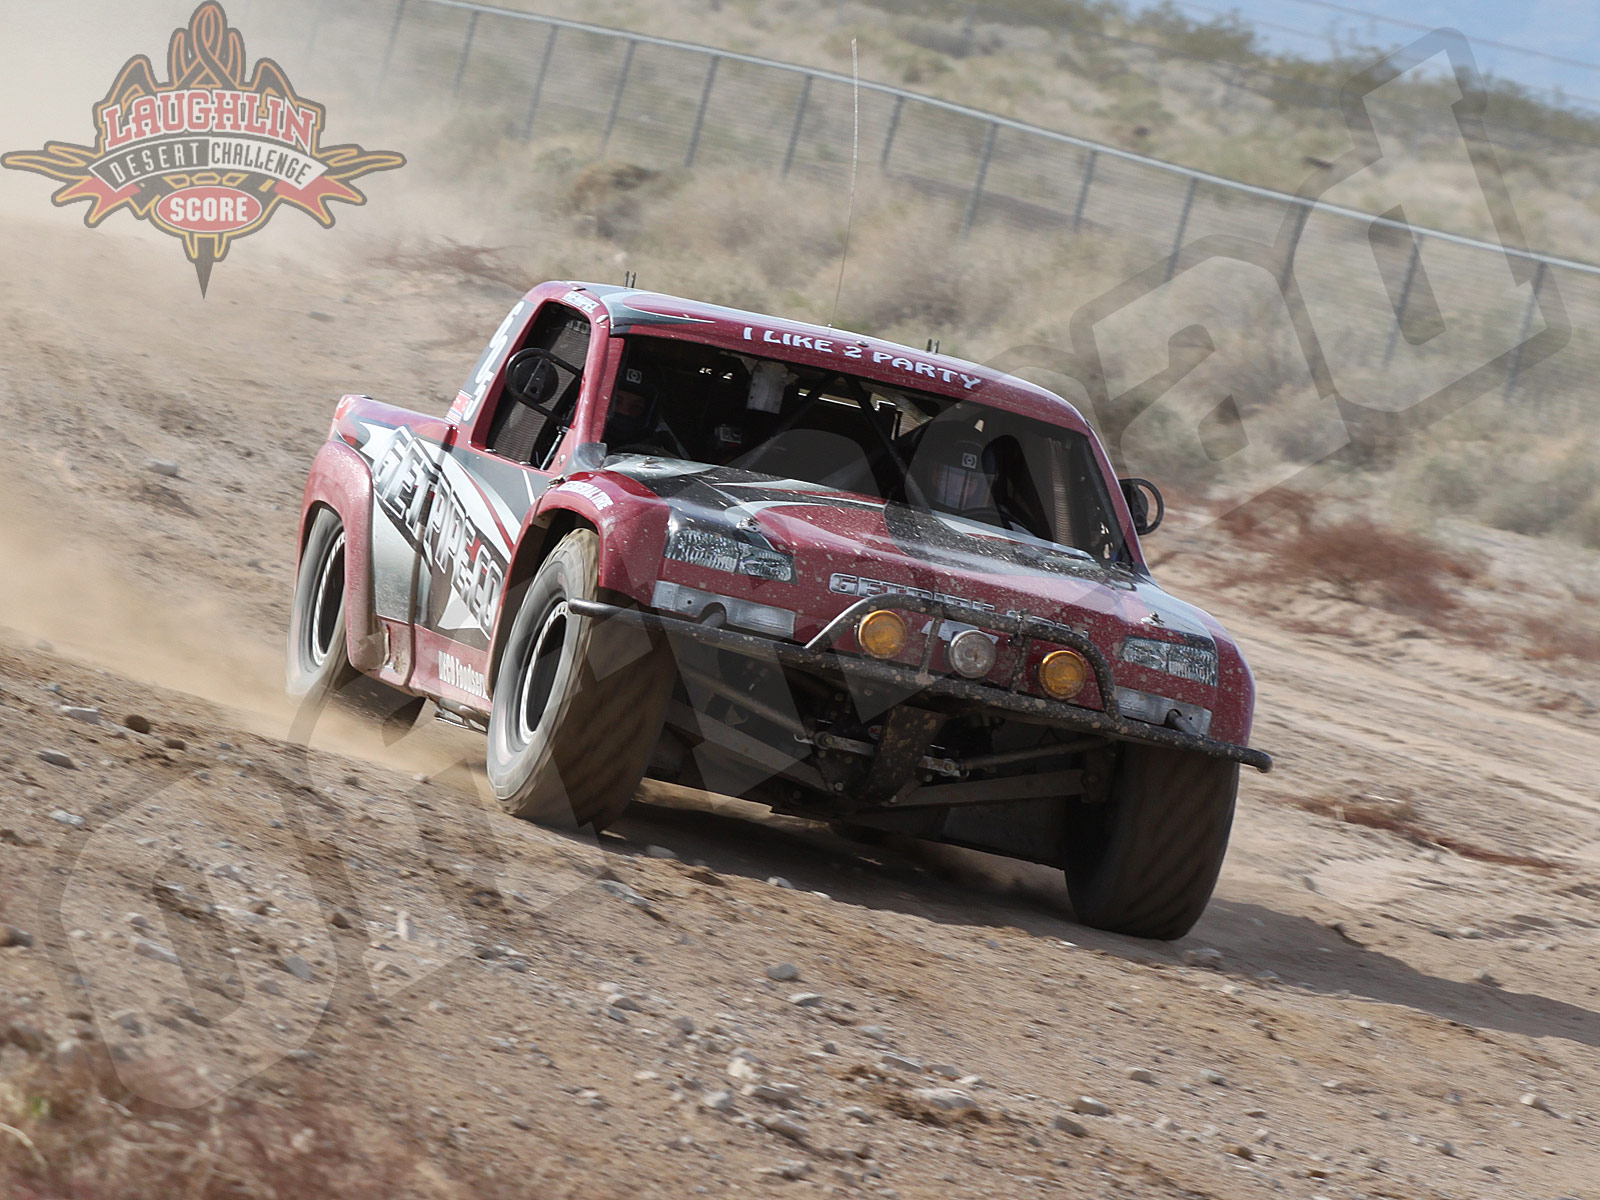 012011or 6606+2011 score laughlin desert challenge+truck classes